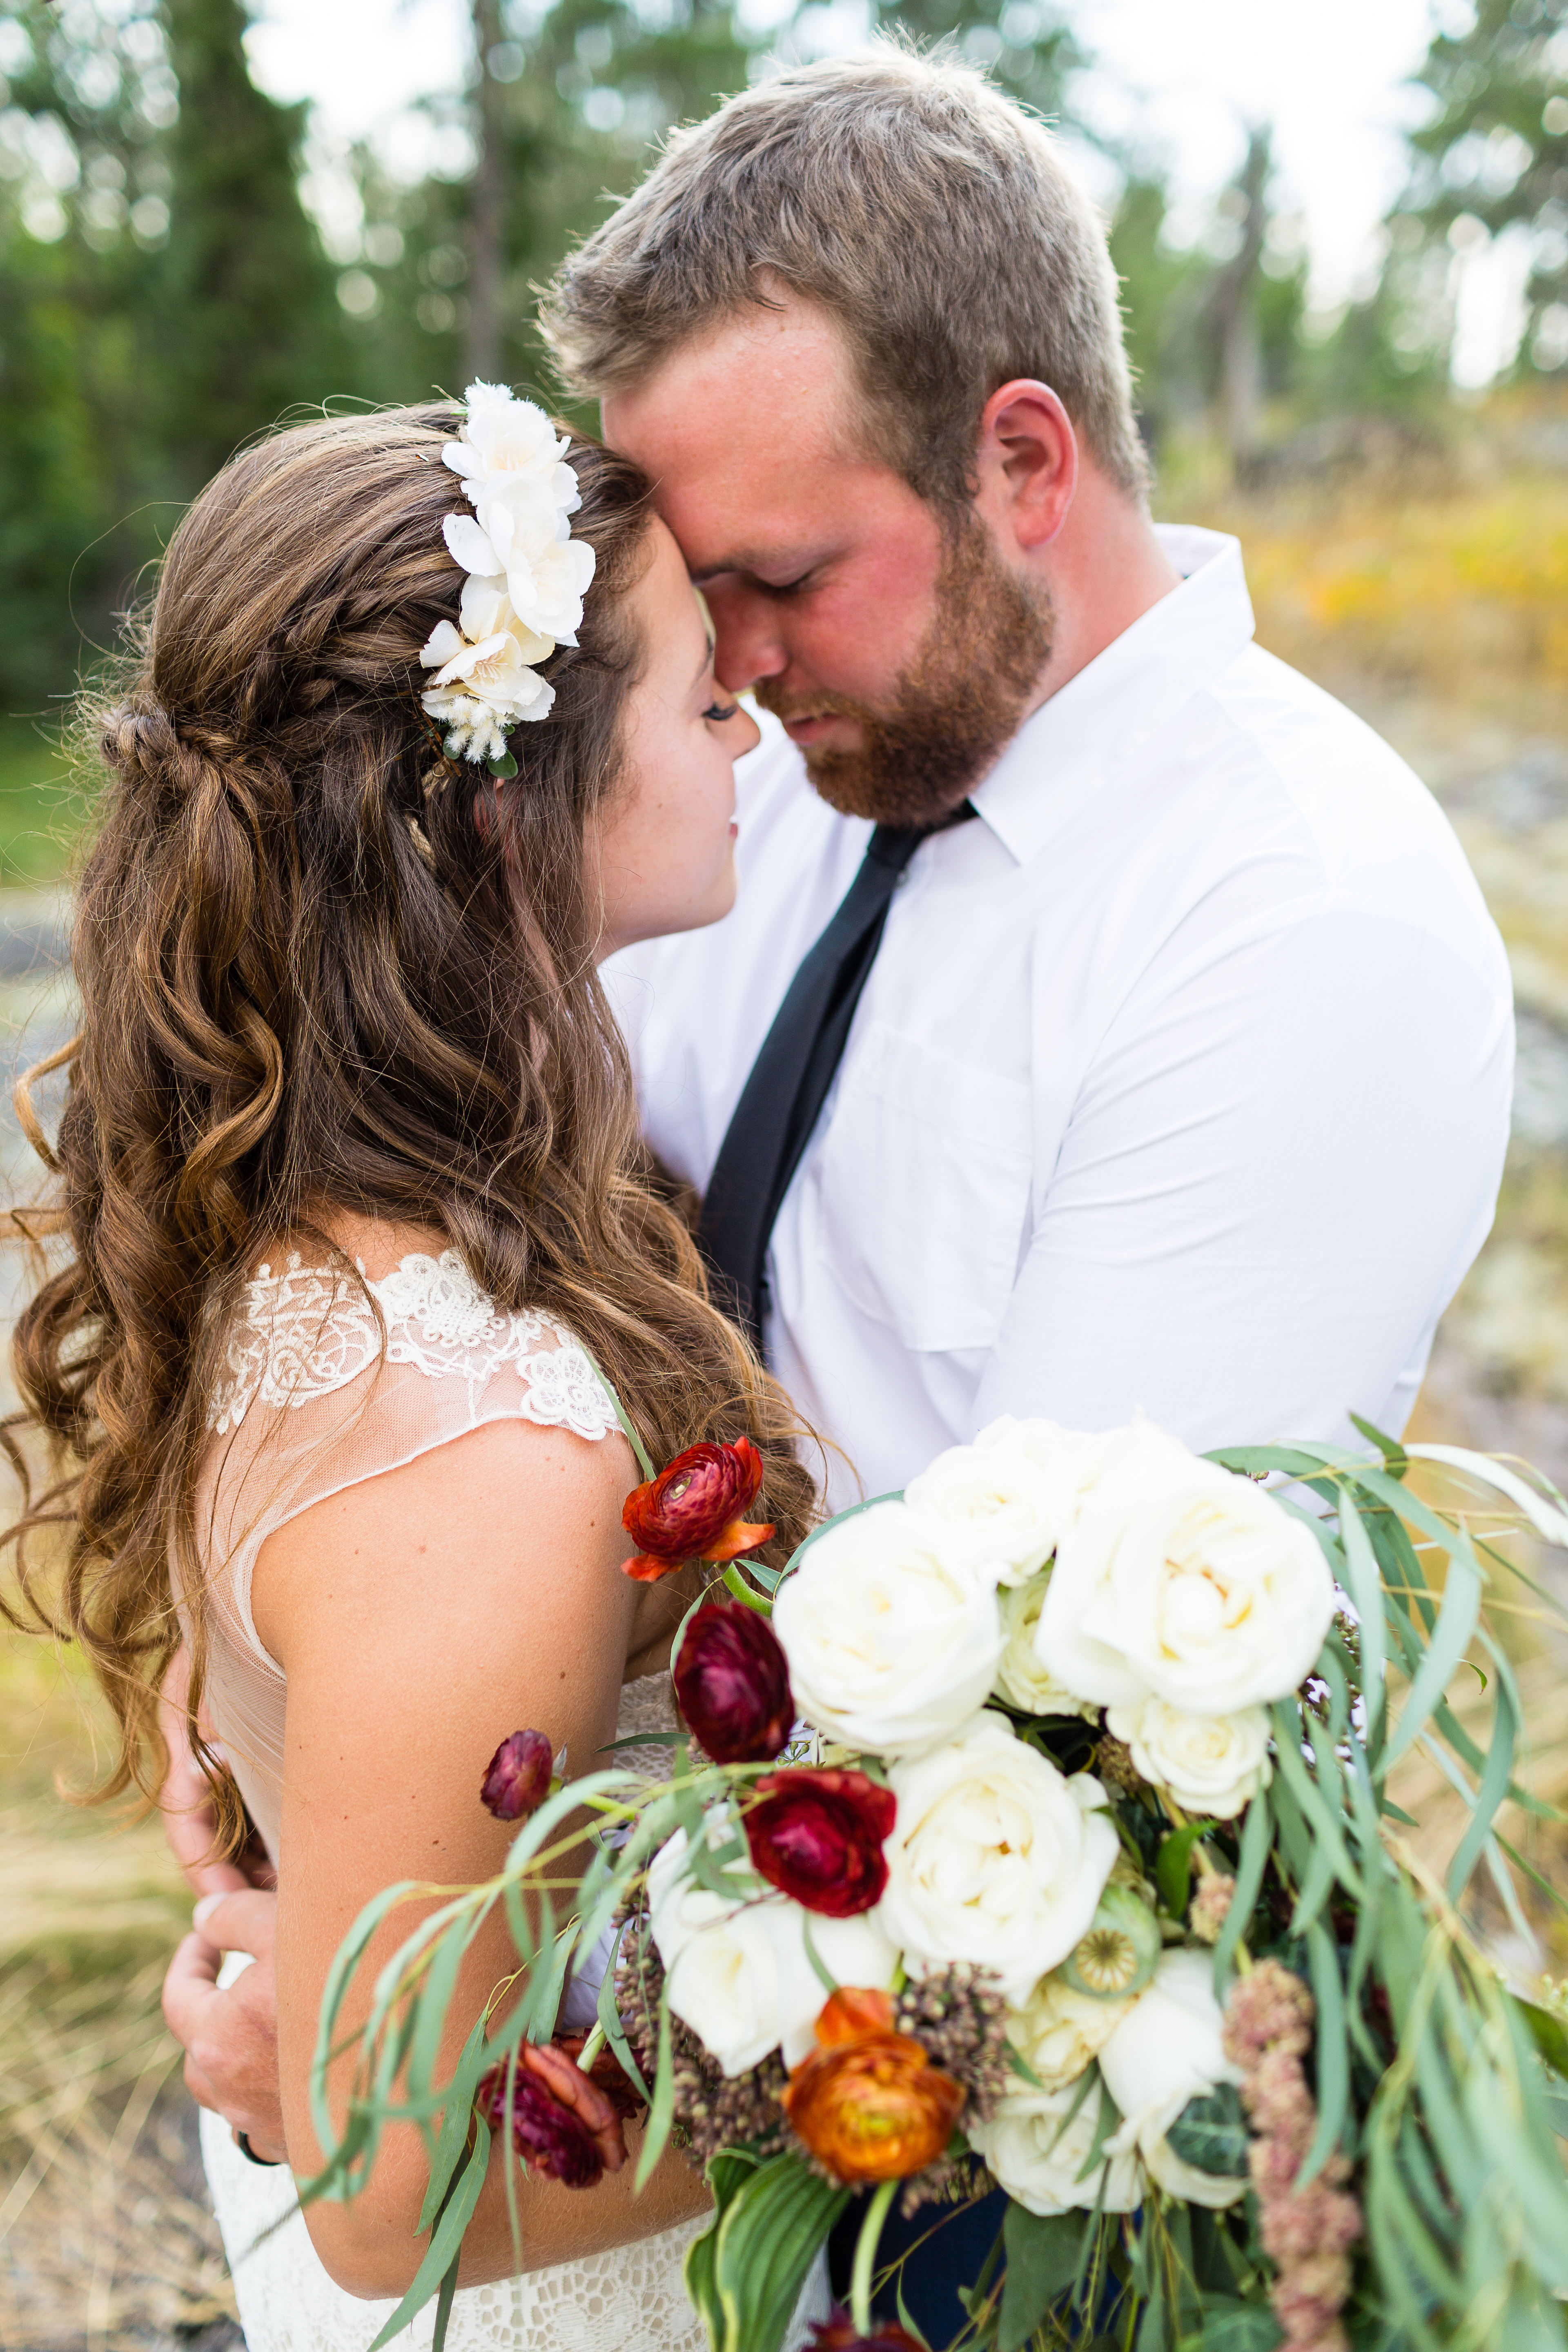 Fine art wedding photographer Dryden